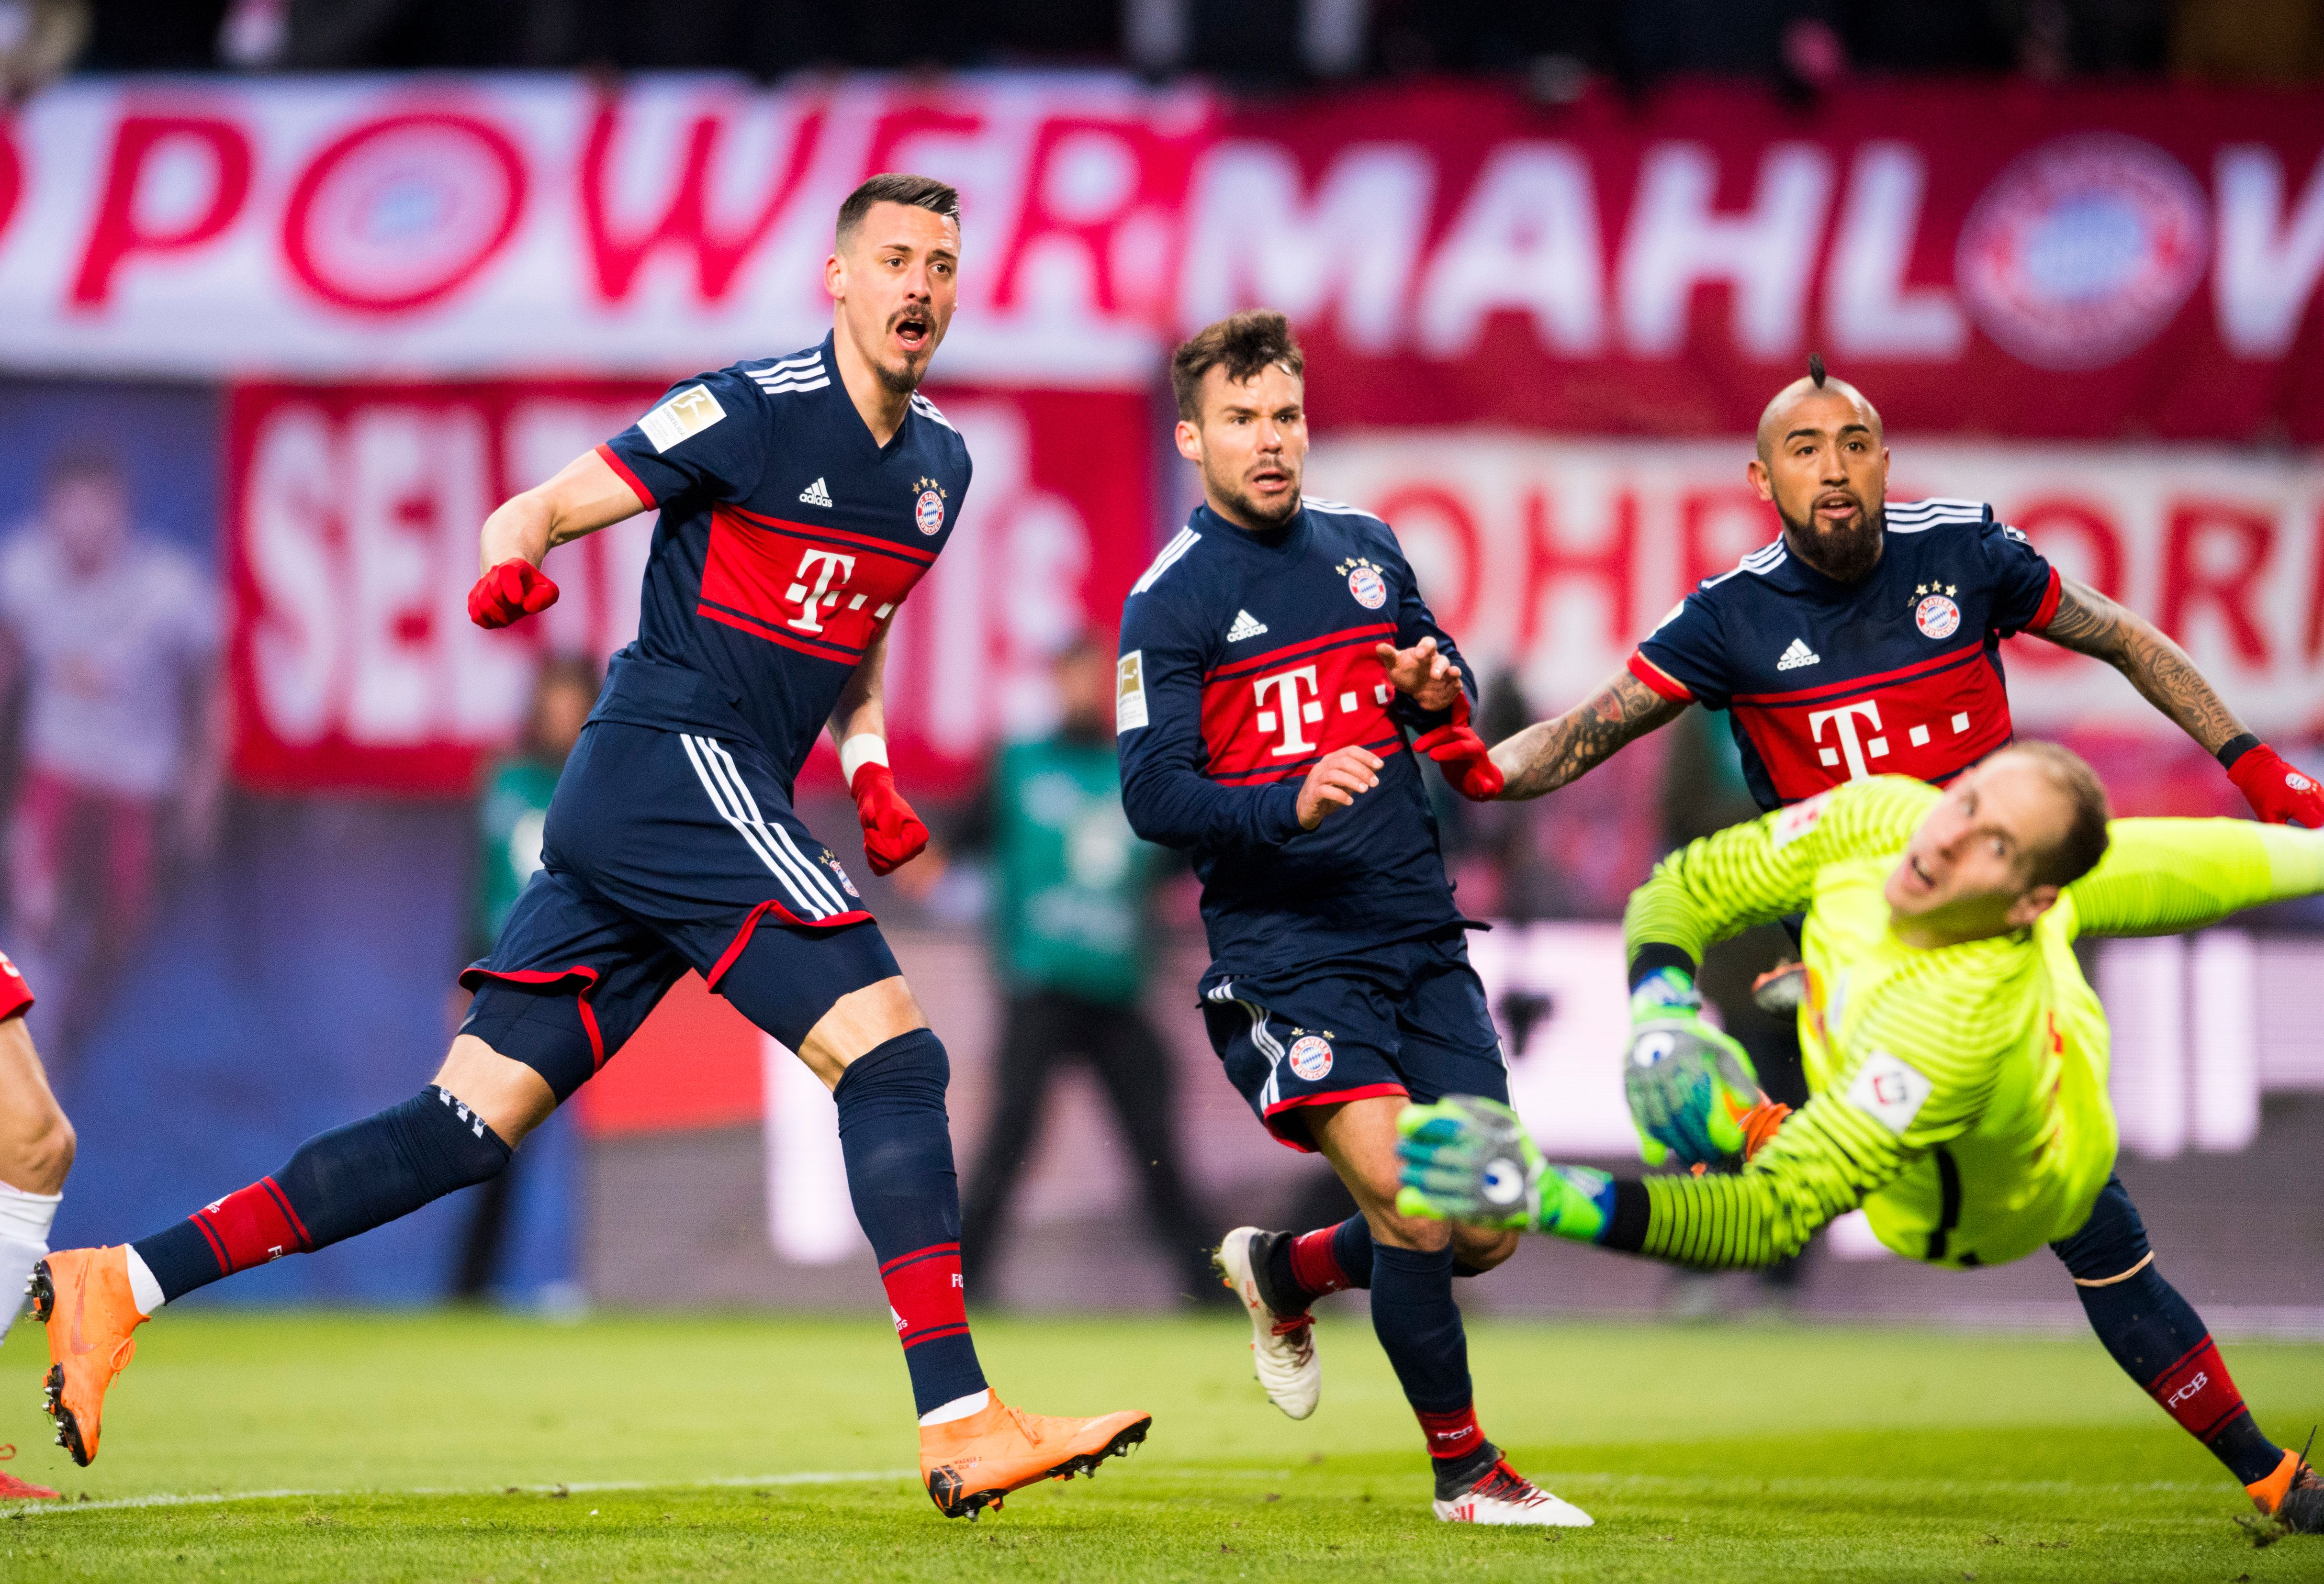 match awards for bayern munich s embarrassing 2 1 loss to rb leipzig bavarian football works. Black Bedroom Furniture Sets. Home Design Ideas